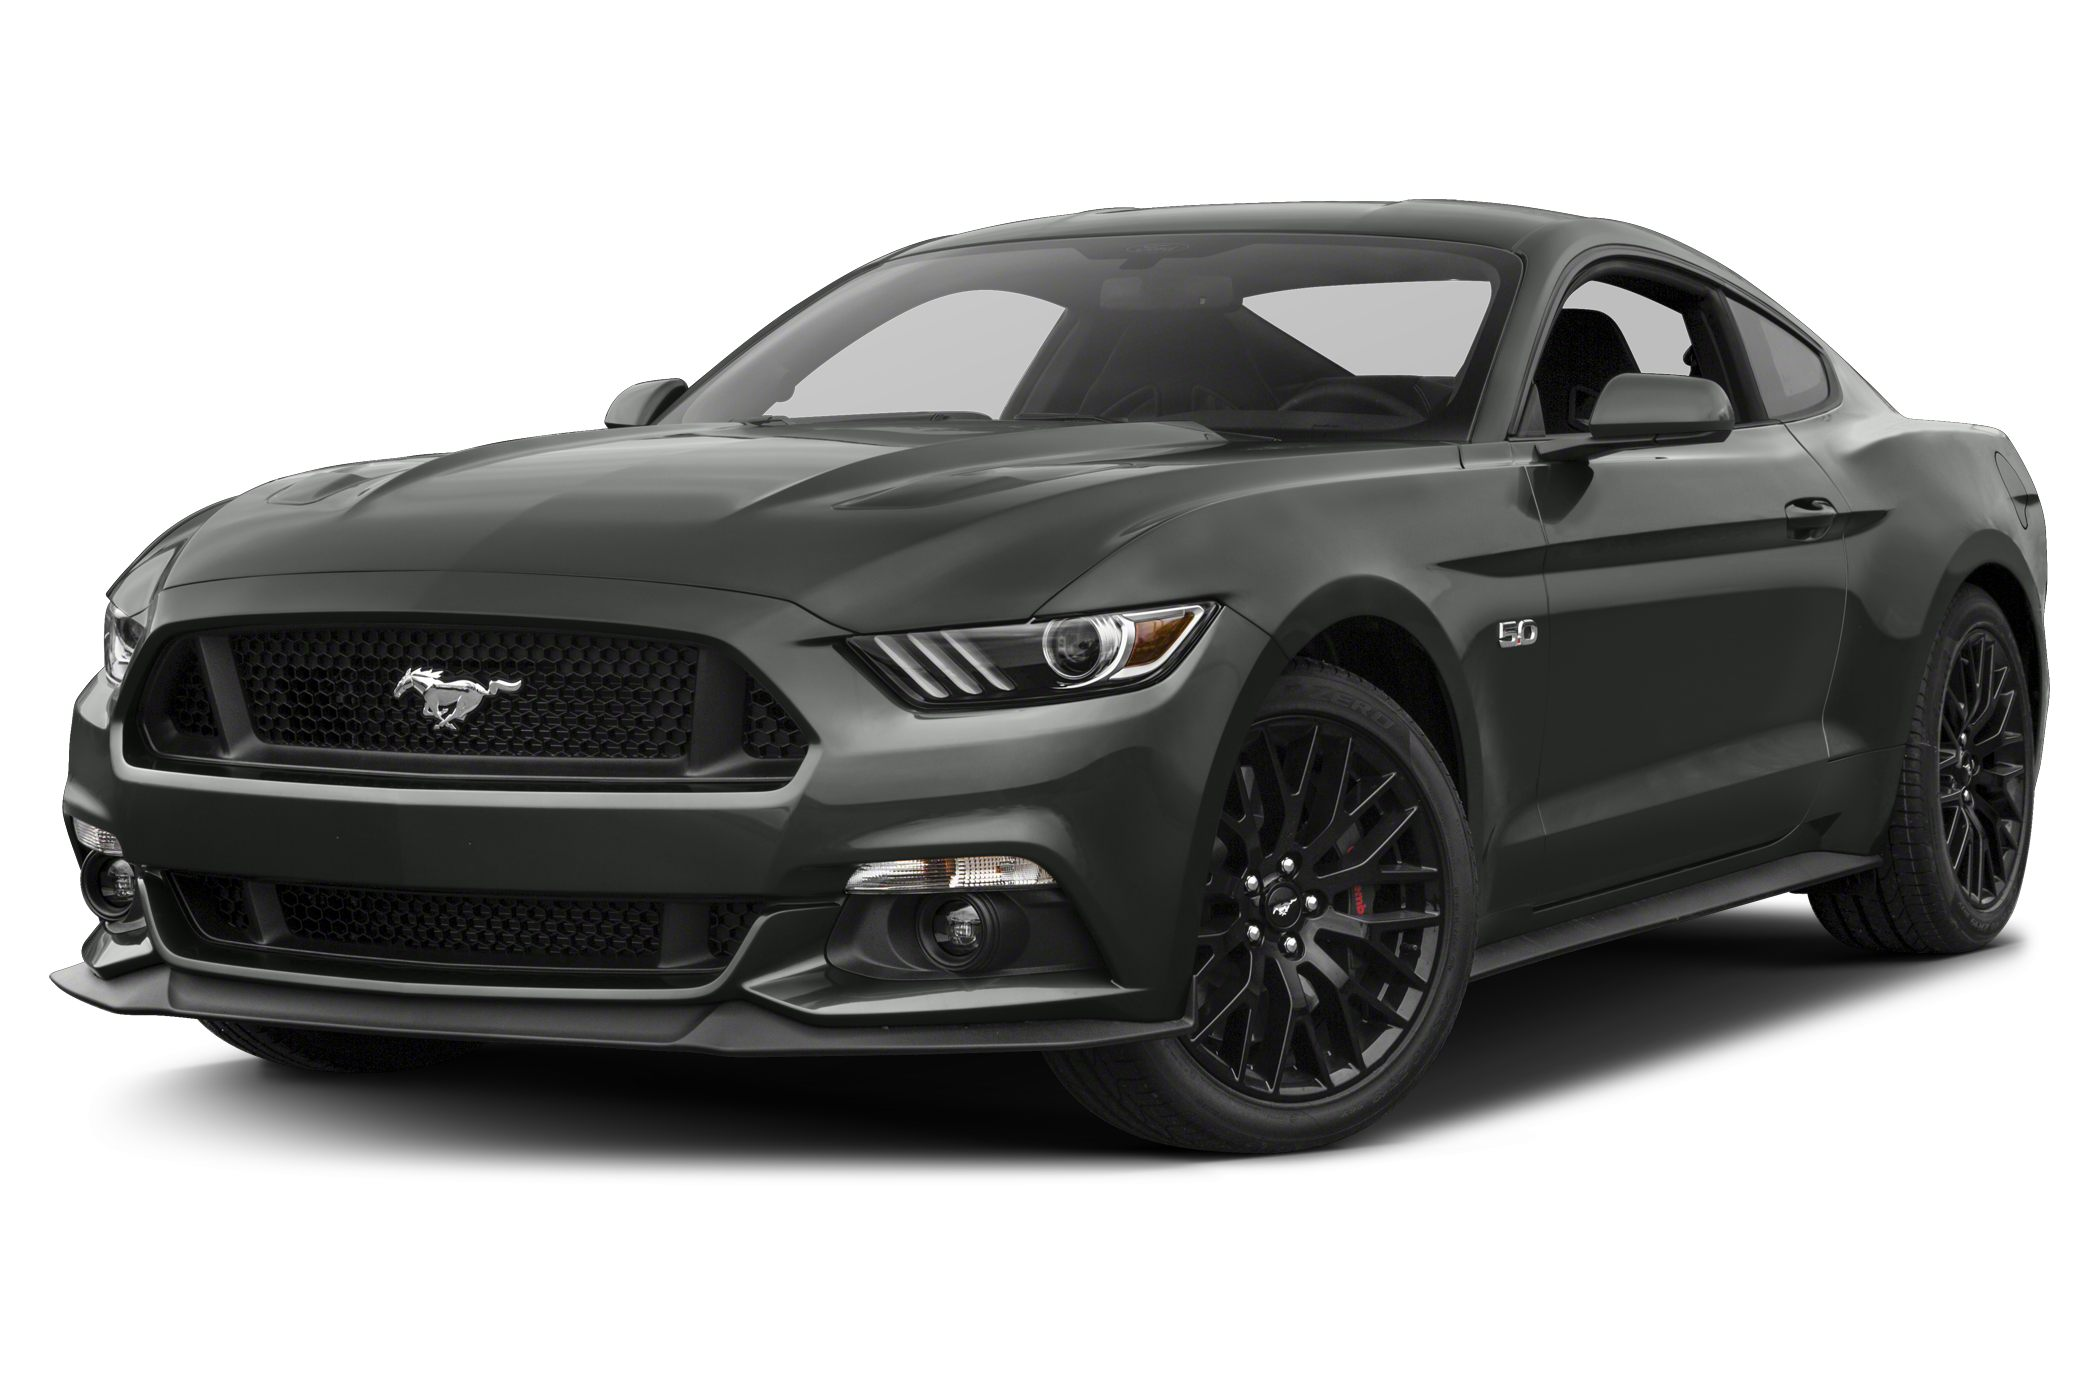 2015 Ford Mustang GT Coupe for sale in Charlotte for $41,855 with 0 miles.